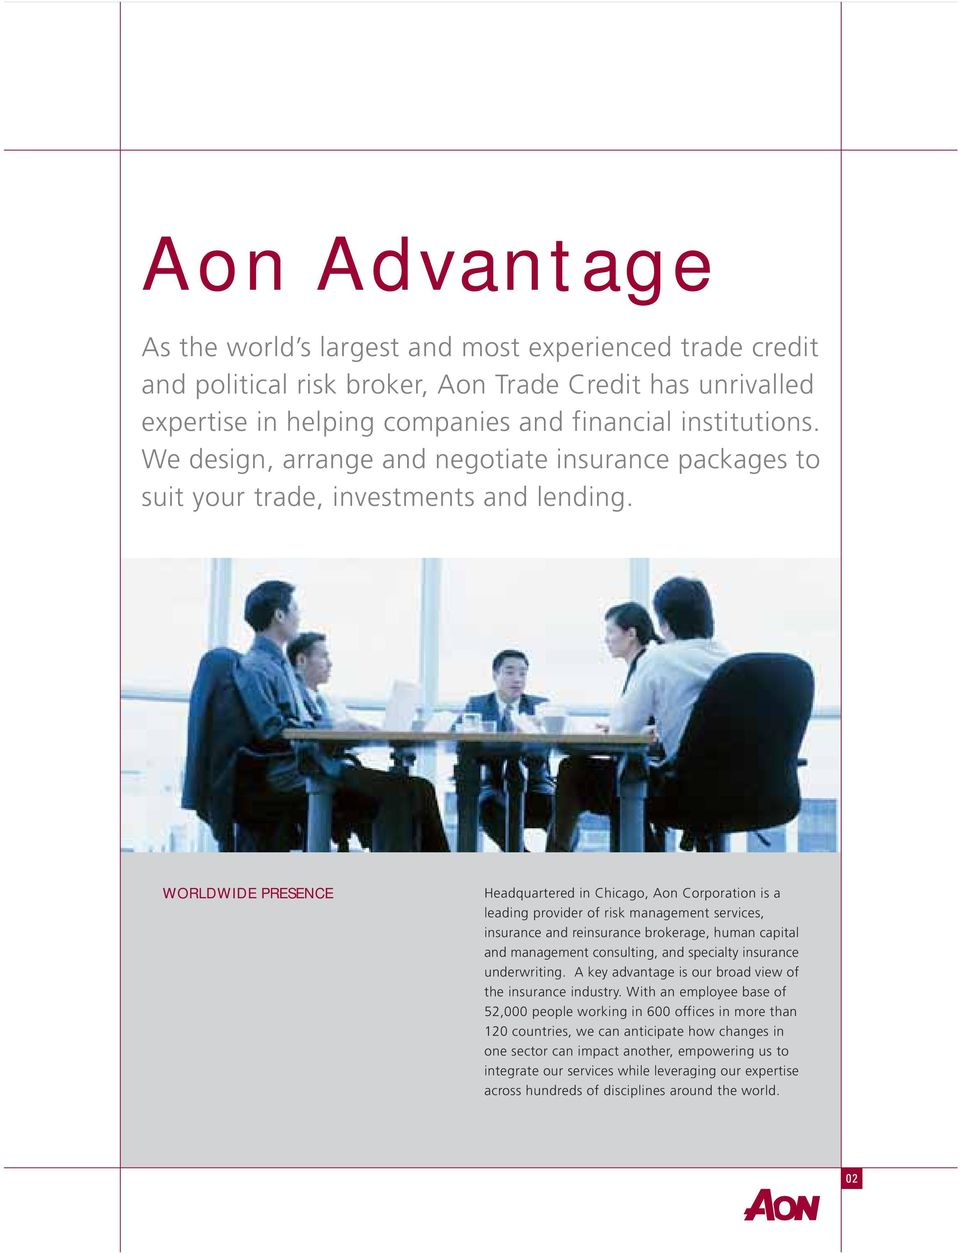 WORLDWIDE PRESENCE Headquartered in Chicago, Aon Corporation is a leading provider of risk management services, insurance and reinsurance brokerage, human capital and management consulting, and